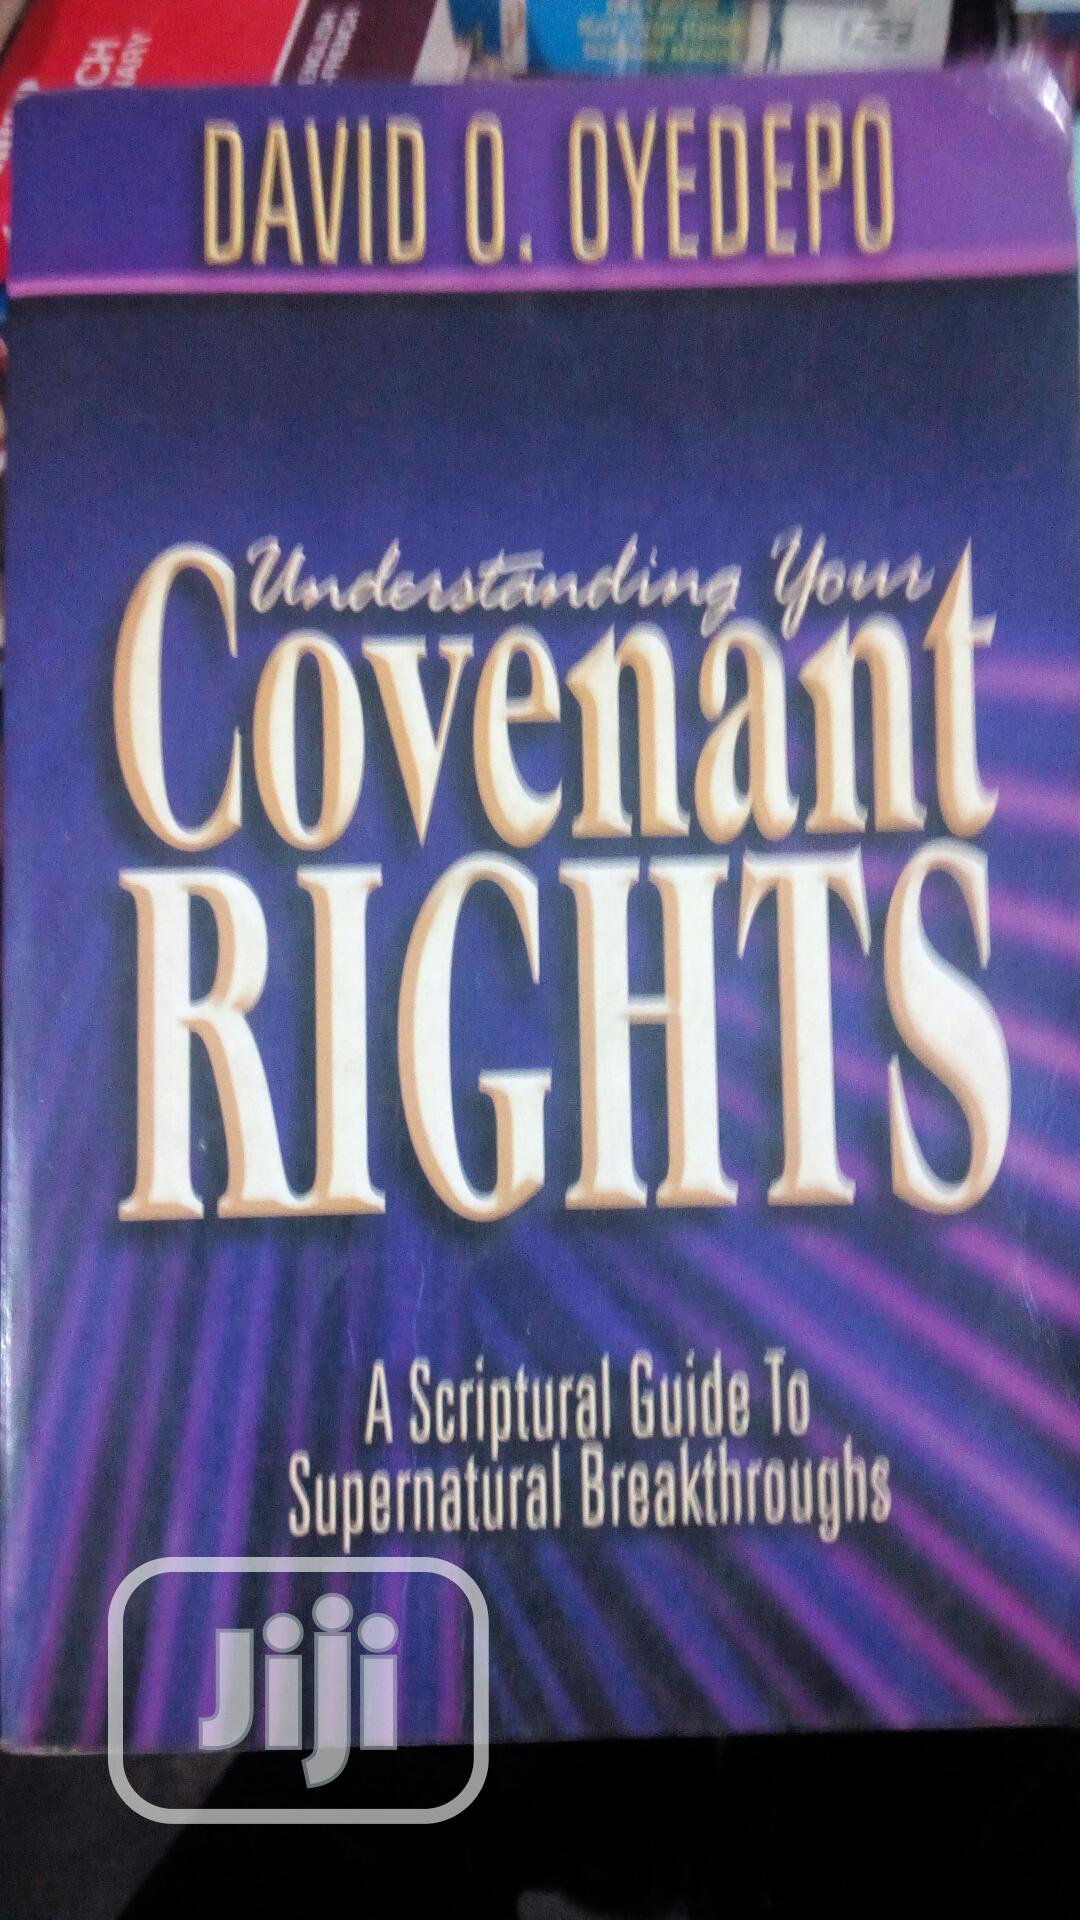 Covenant Right